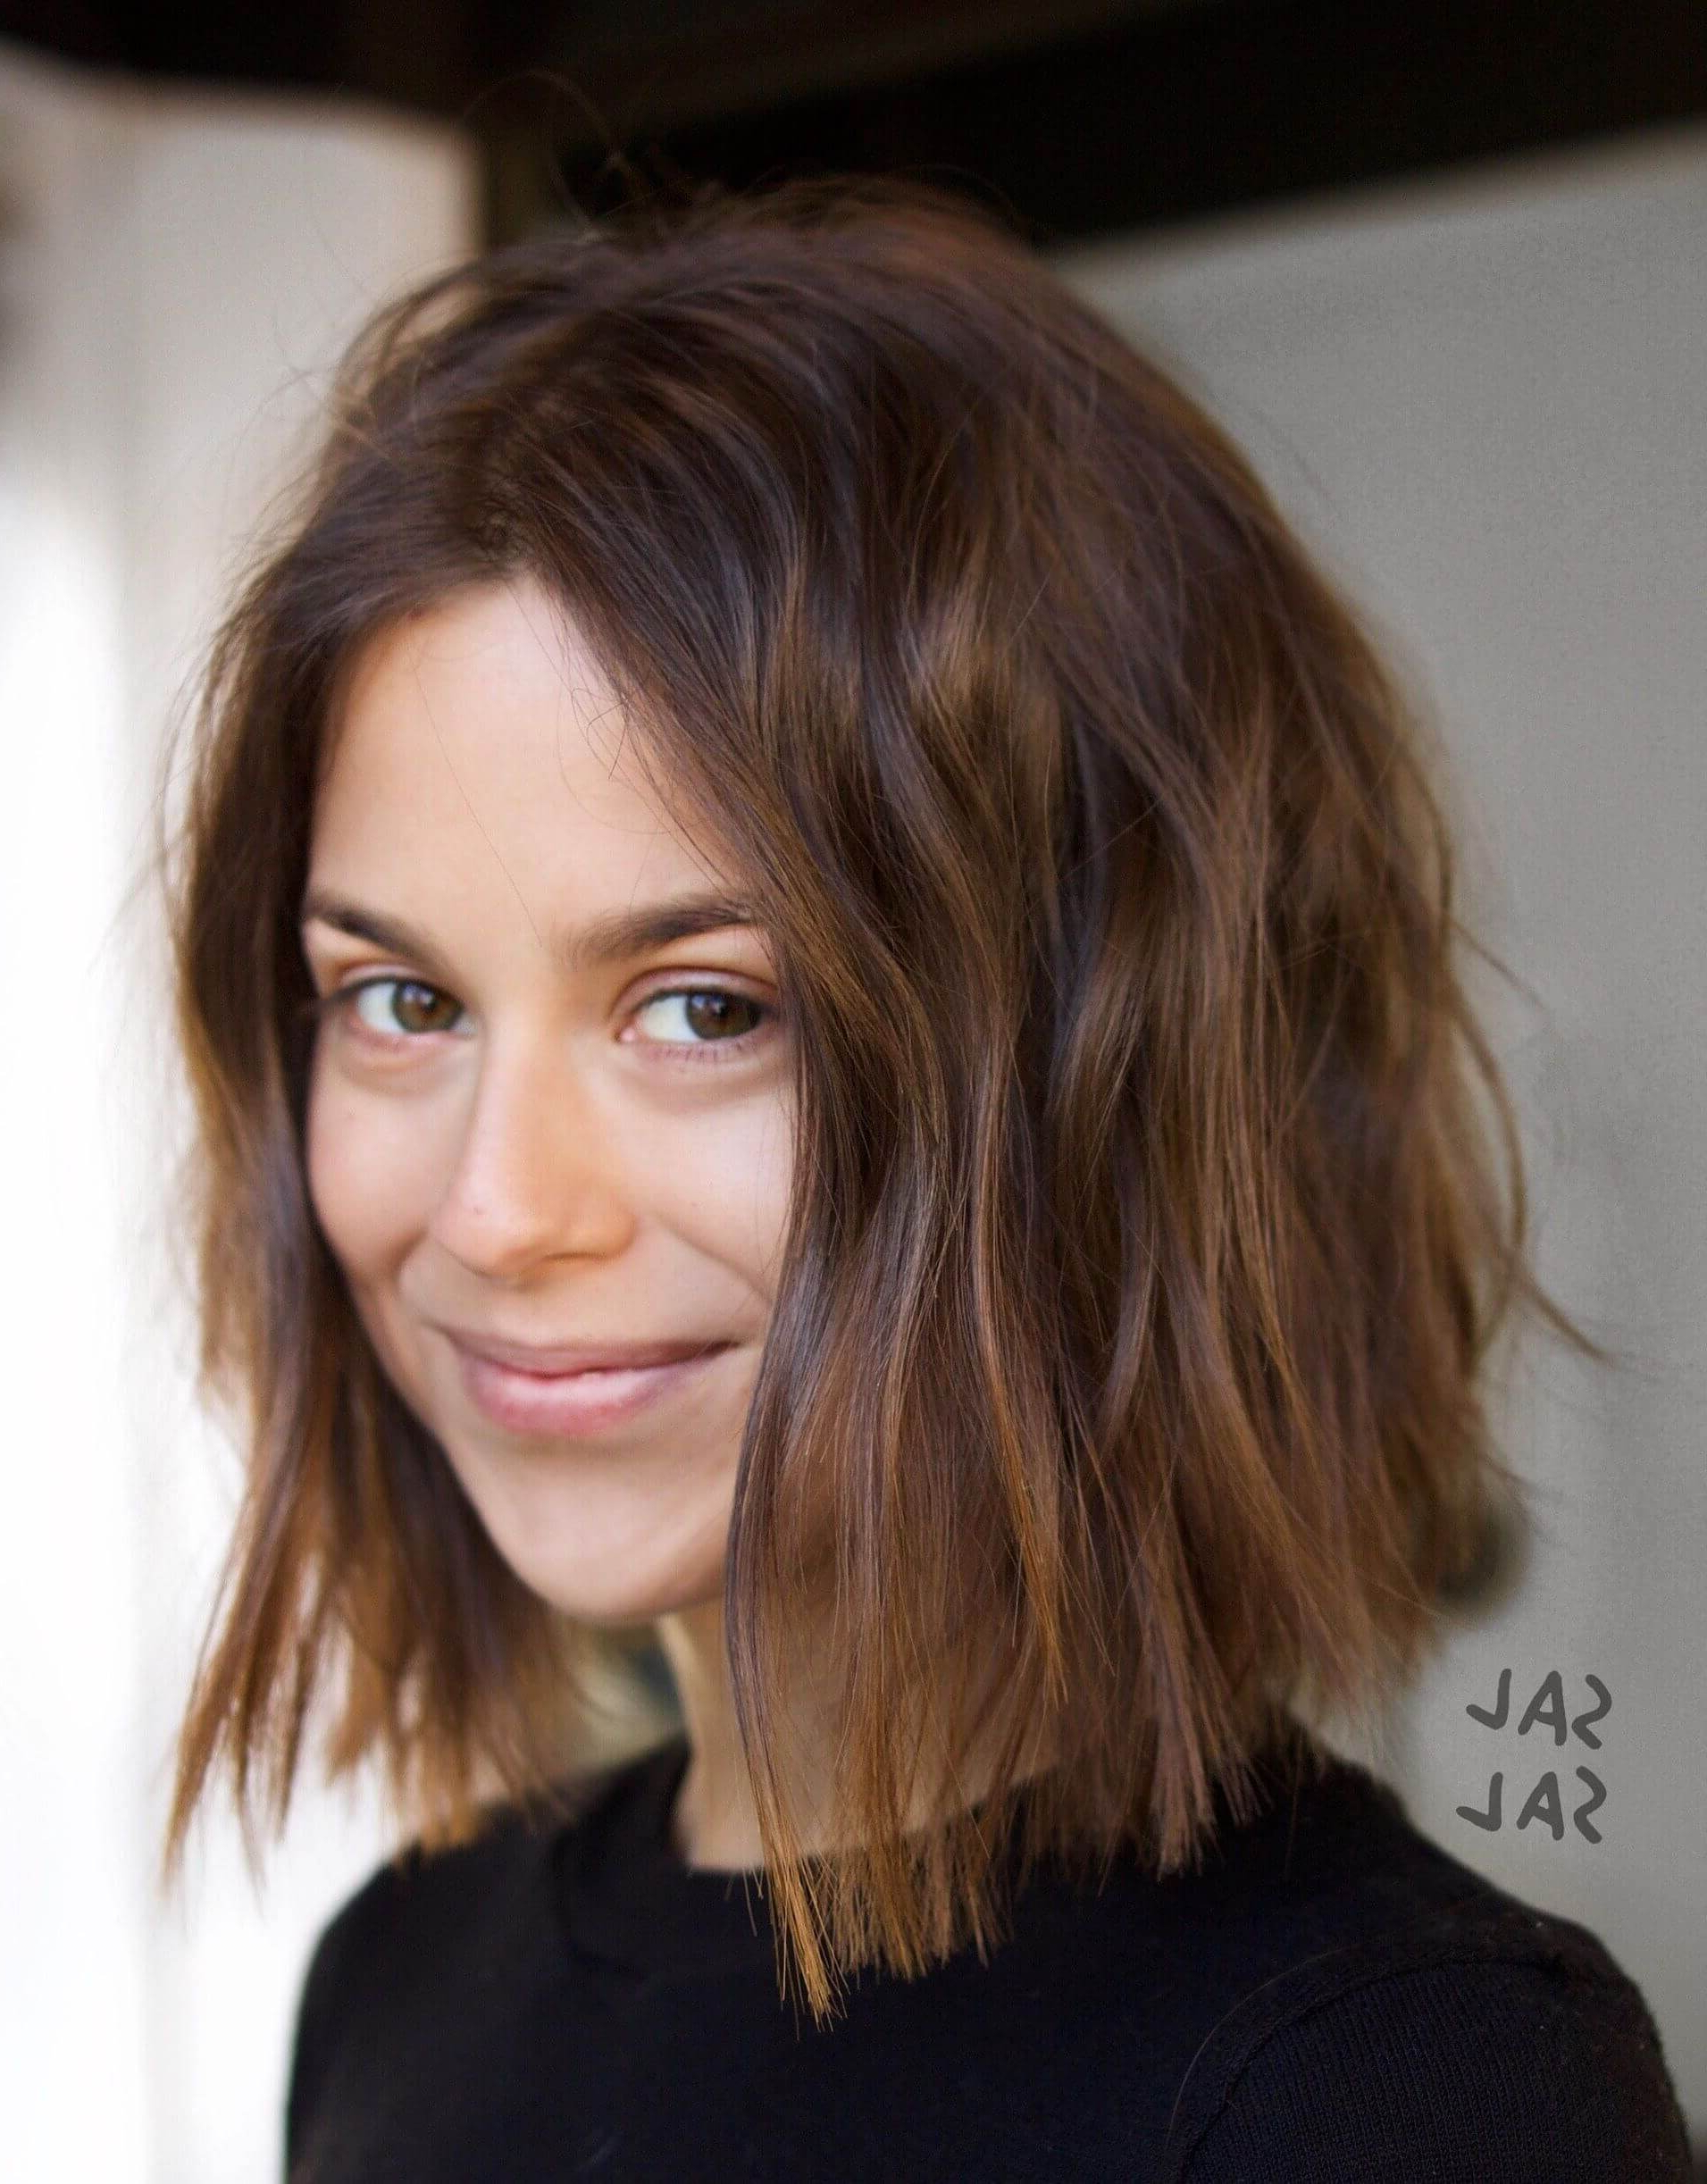 25 Blunt Bob Haircuts – Hairstyles That Are Timeless With A Intended For Widely Used Blunt Bob Hairstyles (View 9 of 20)